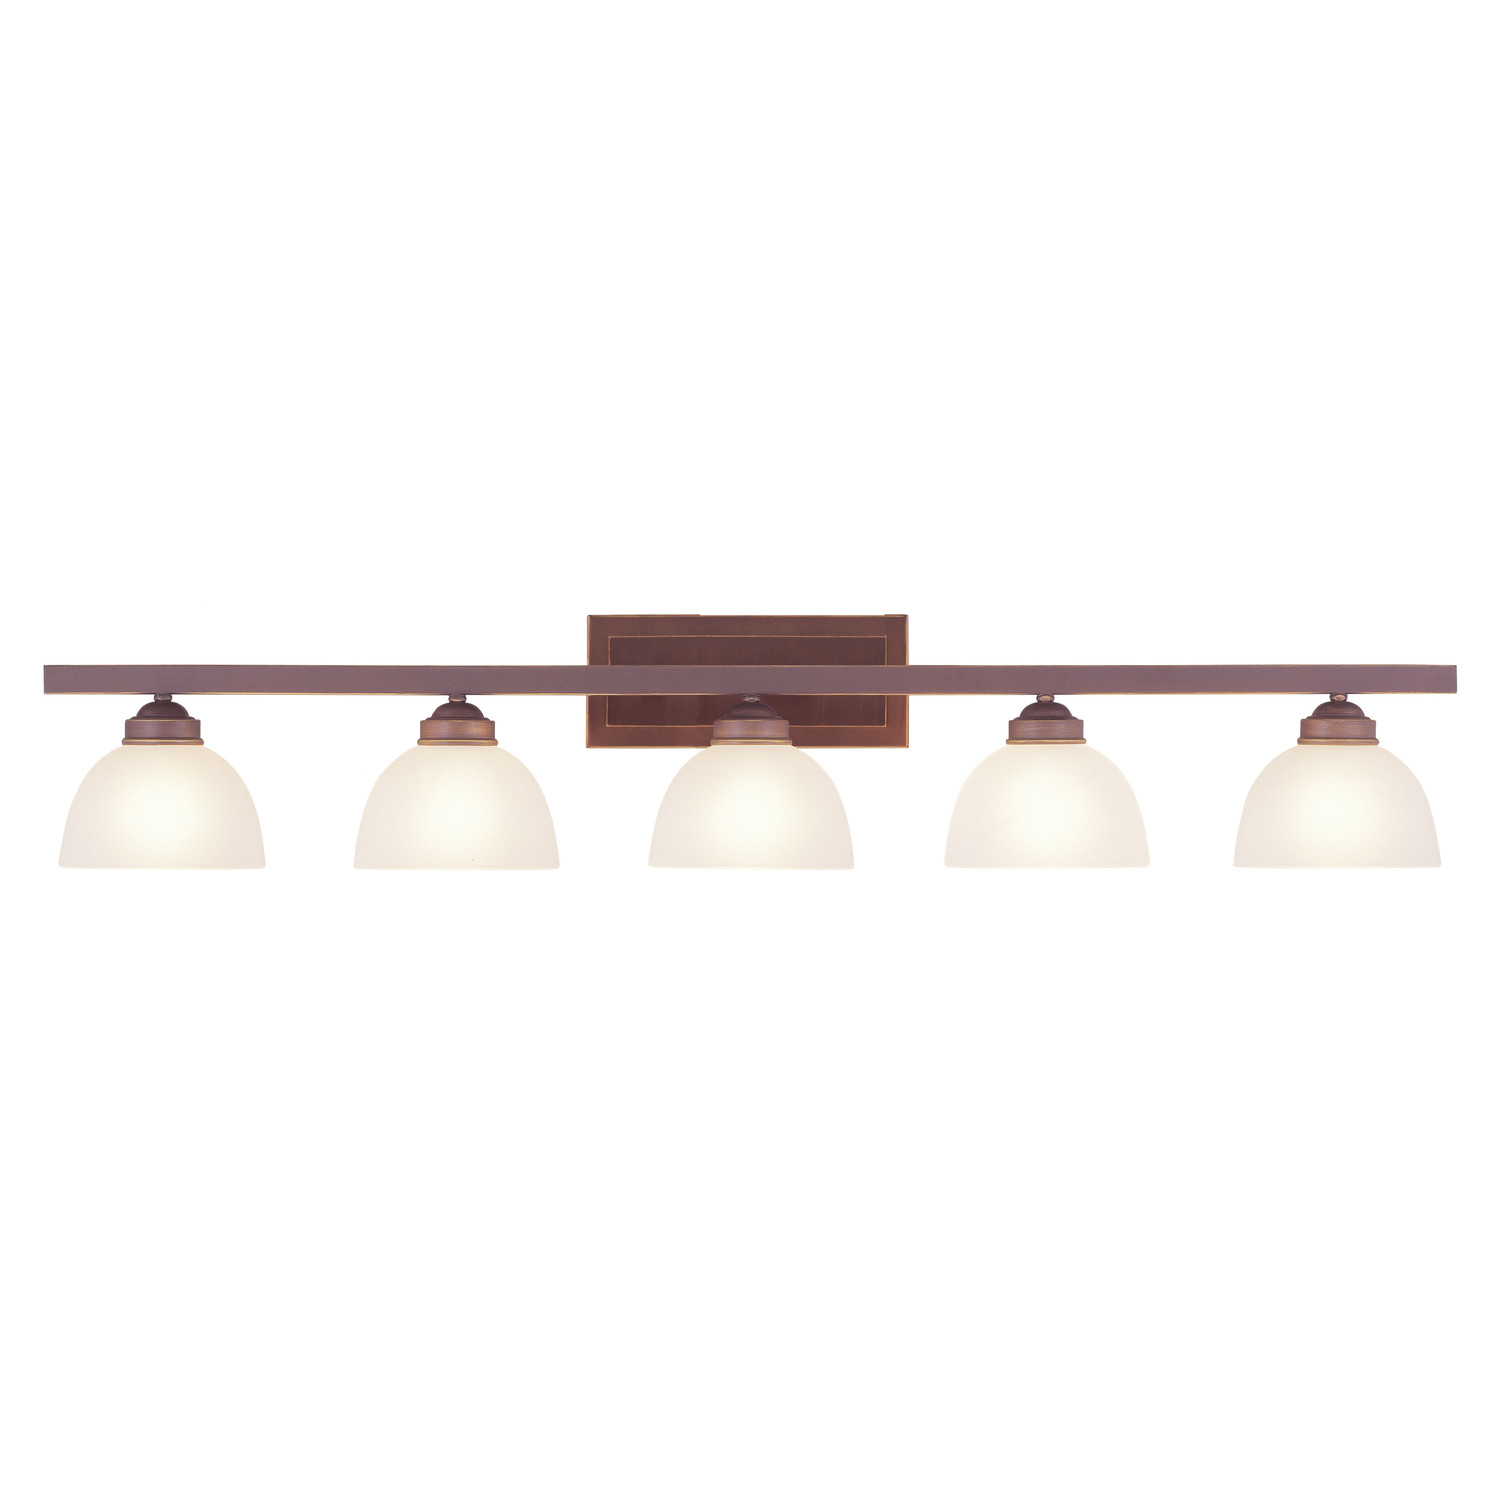 Beautiful Livex Lighting Somerset 5 Light Bath Vanity Light For Bathroom Lighting Ideas